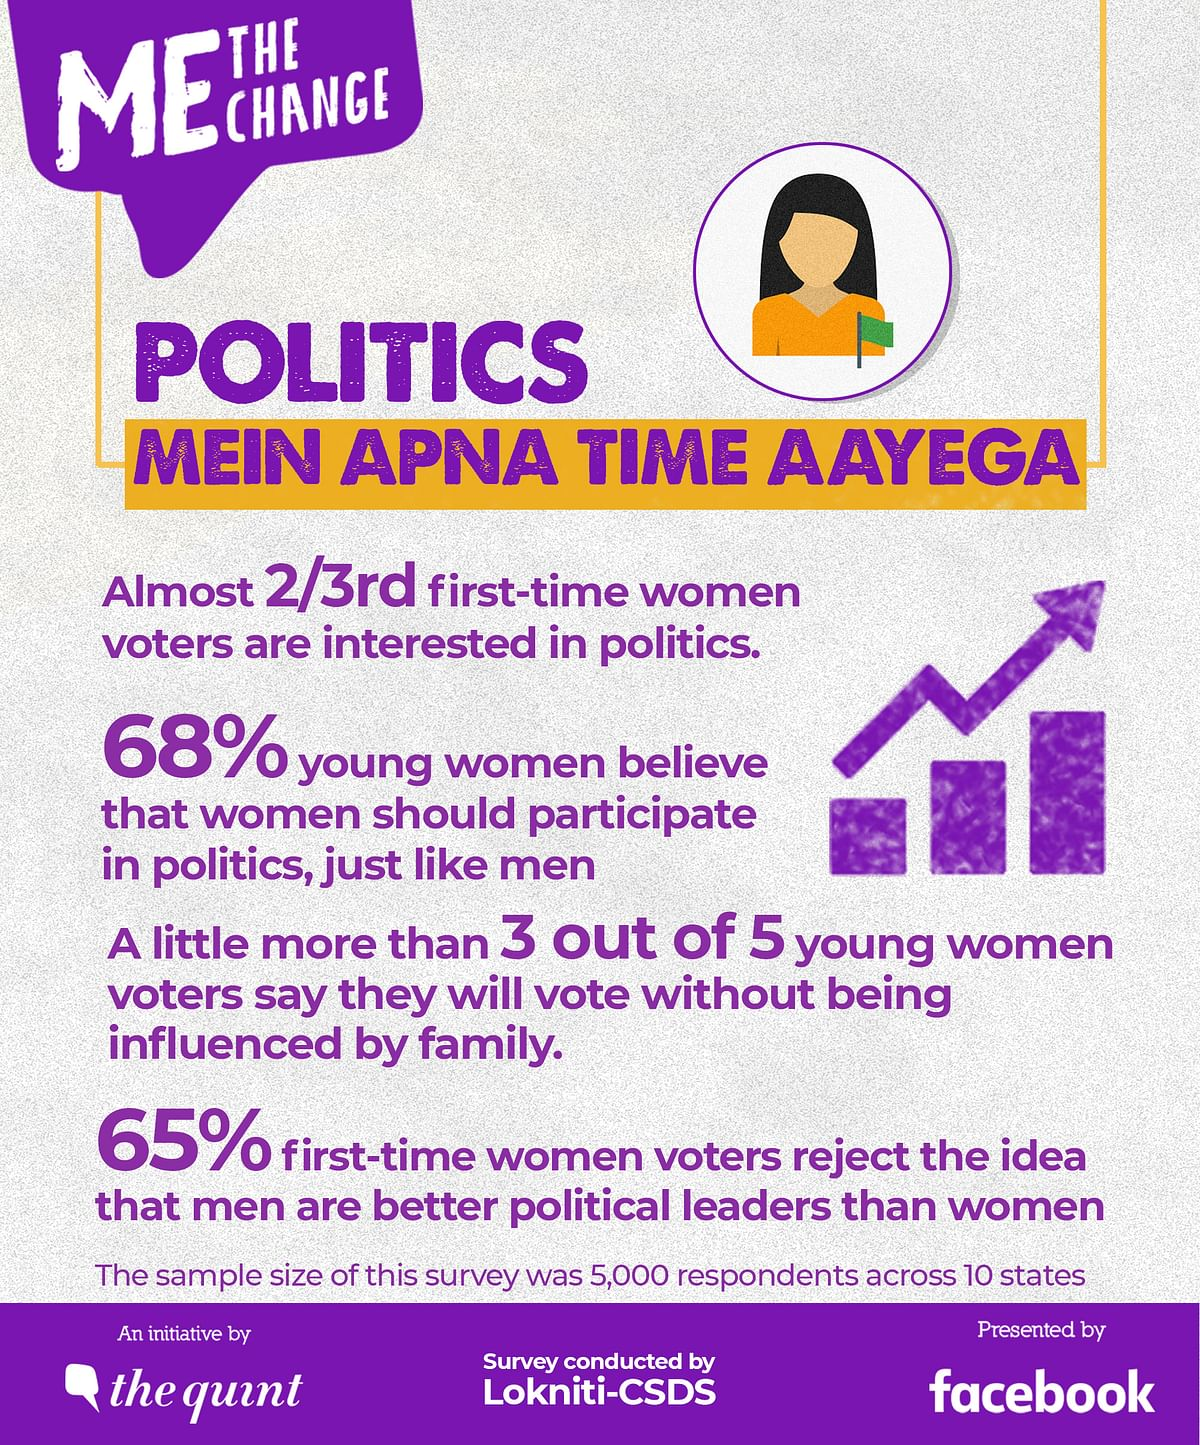 More than 3 out of 5 first-time women voters say they will vote in the 2019 elections without the influence of their family.